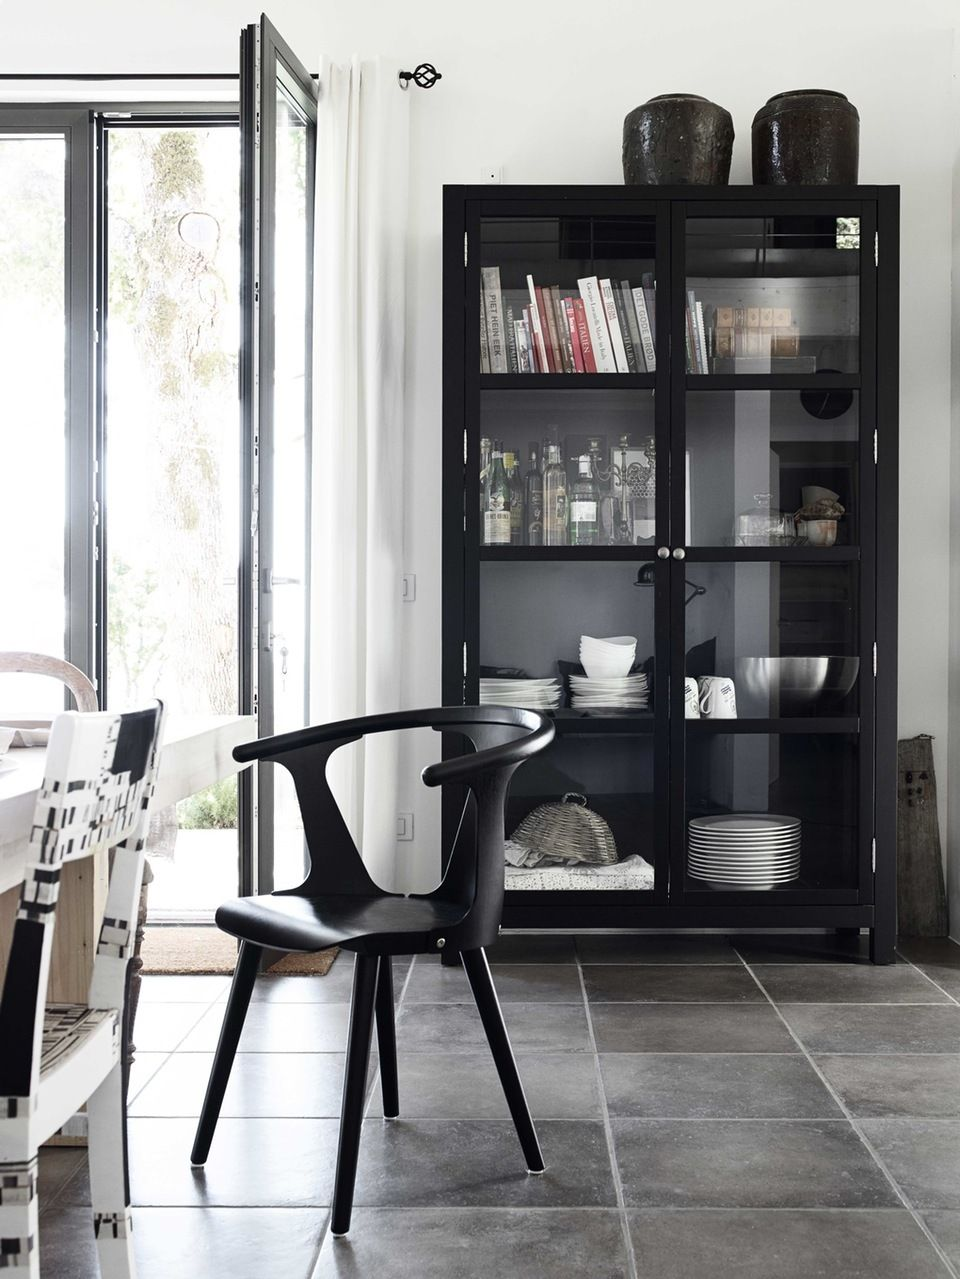 Modern Dining Room With A Black China Cabinet Containing Books Tableware And Alcohol